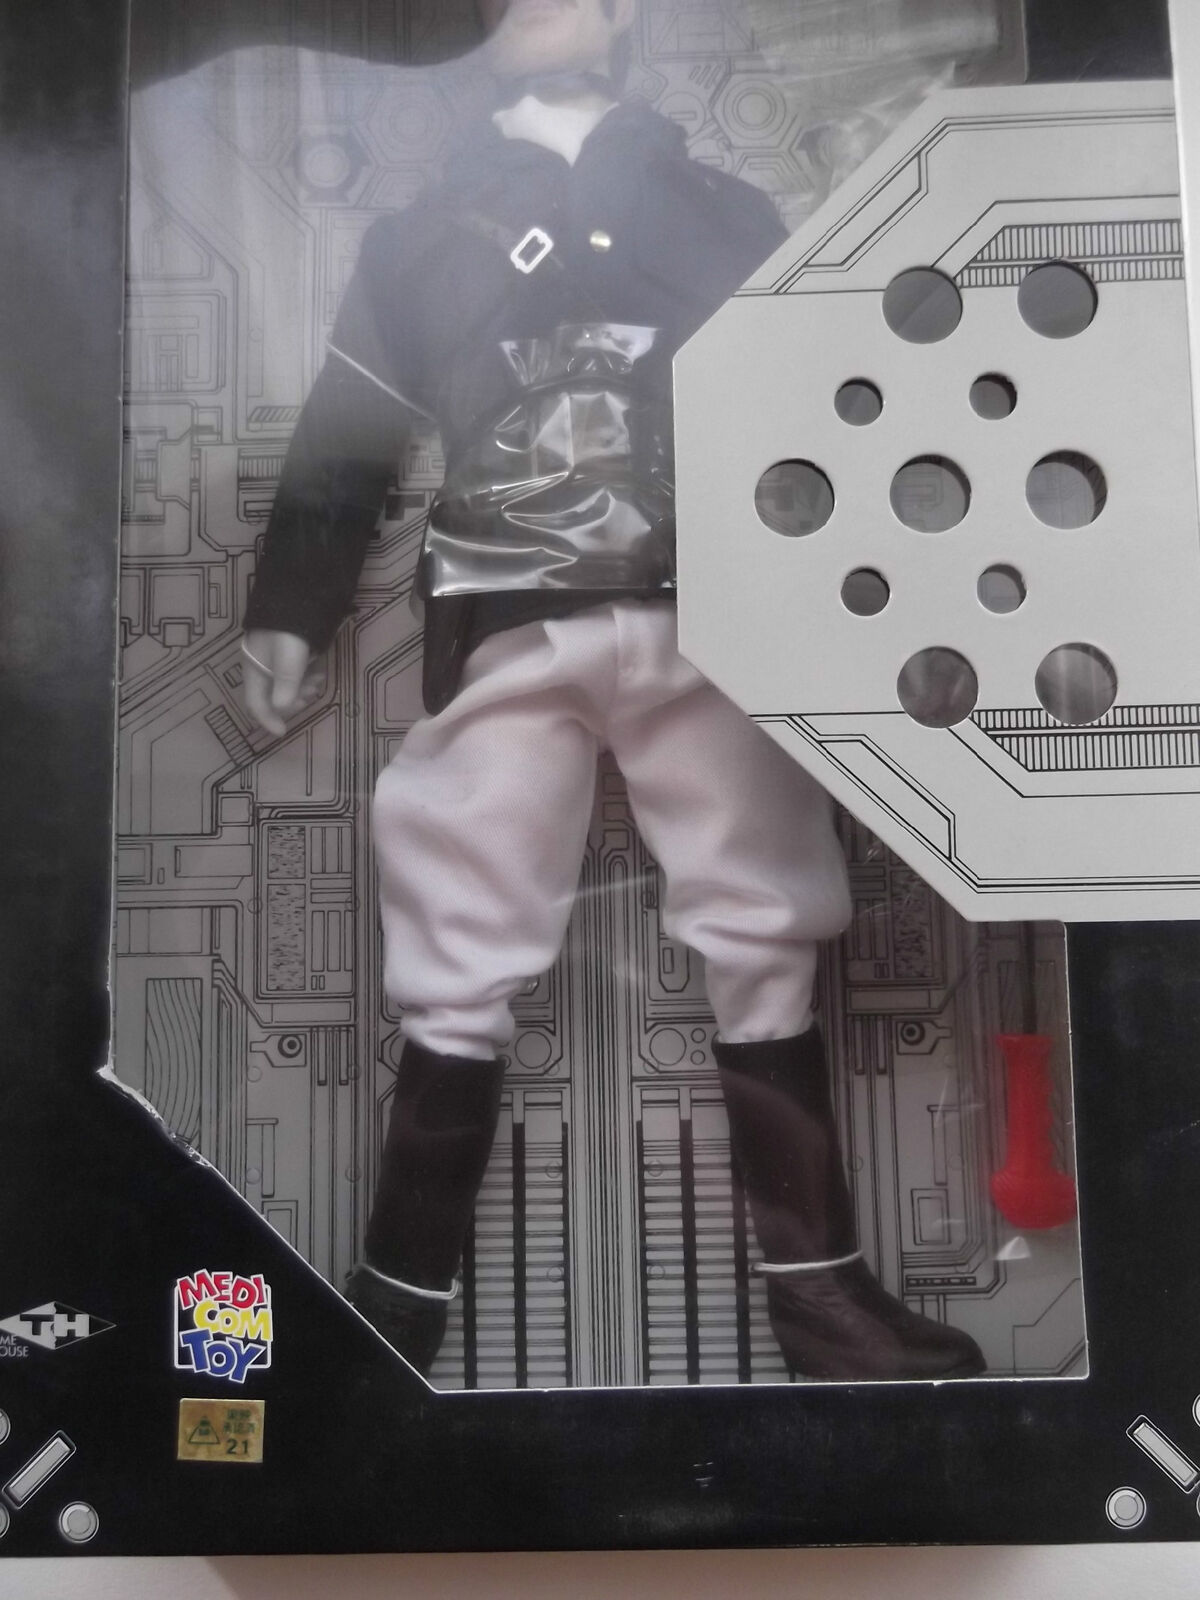 MEDICOM REAL ACTION HEROES HEROES HEROES KAMEN RIDER COLONEL ZOL 12 ACTION FIGURE MINT IN BOX 3deb8a